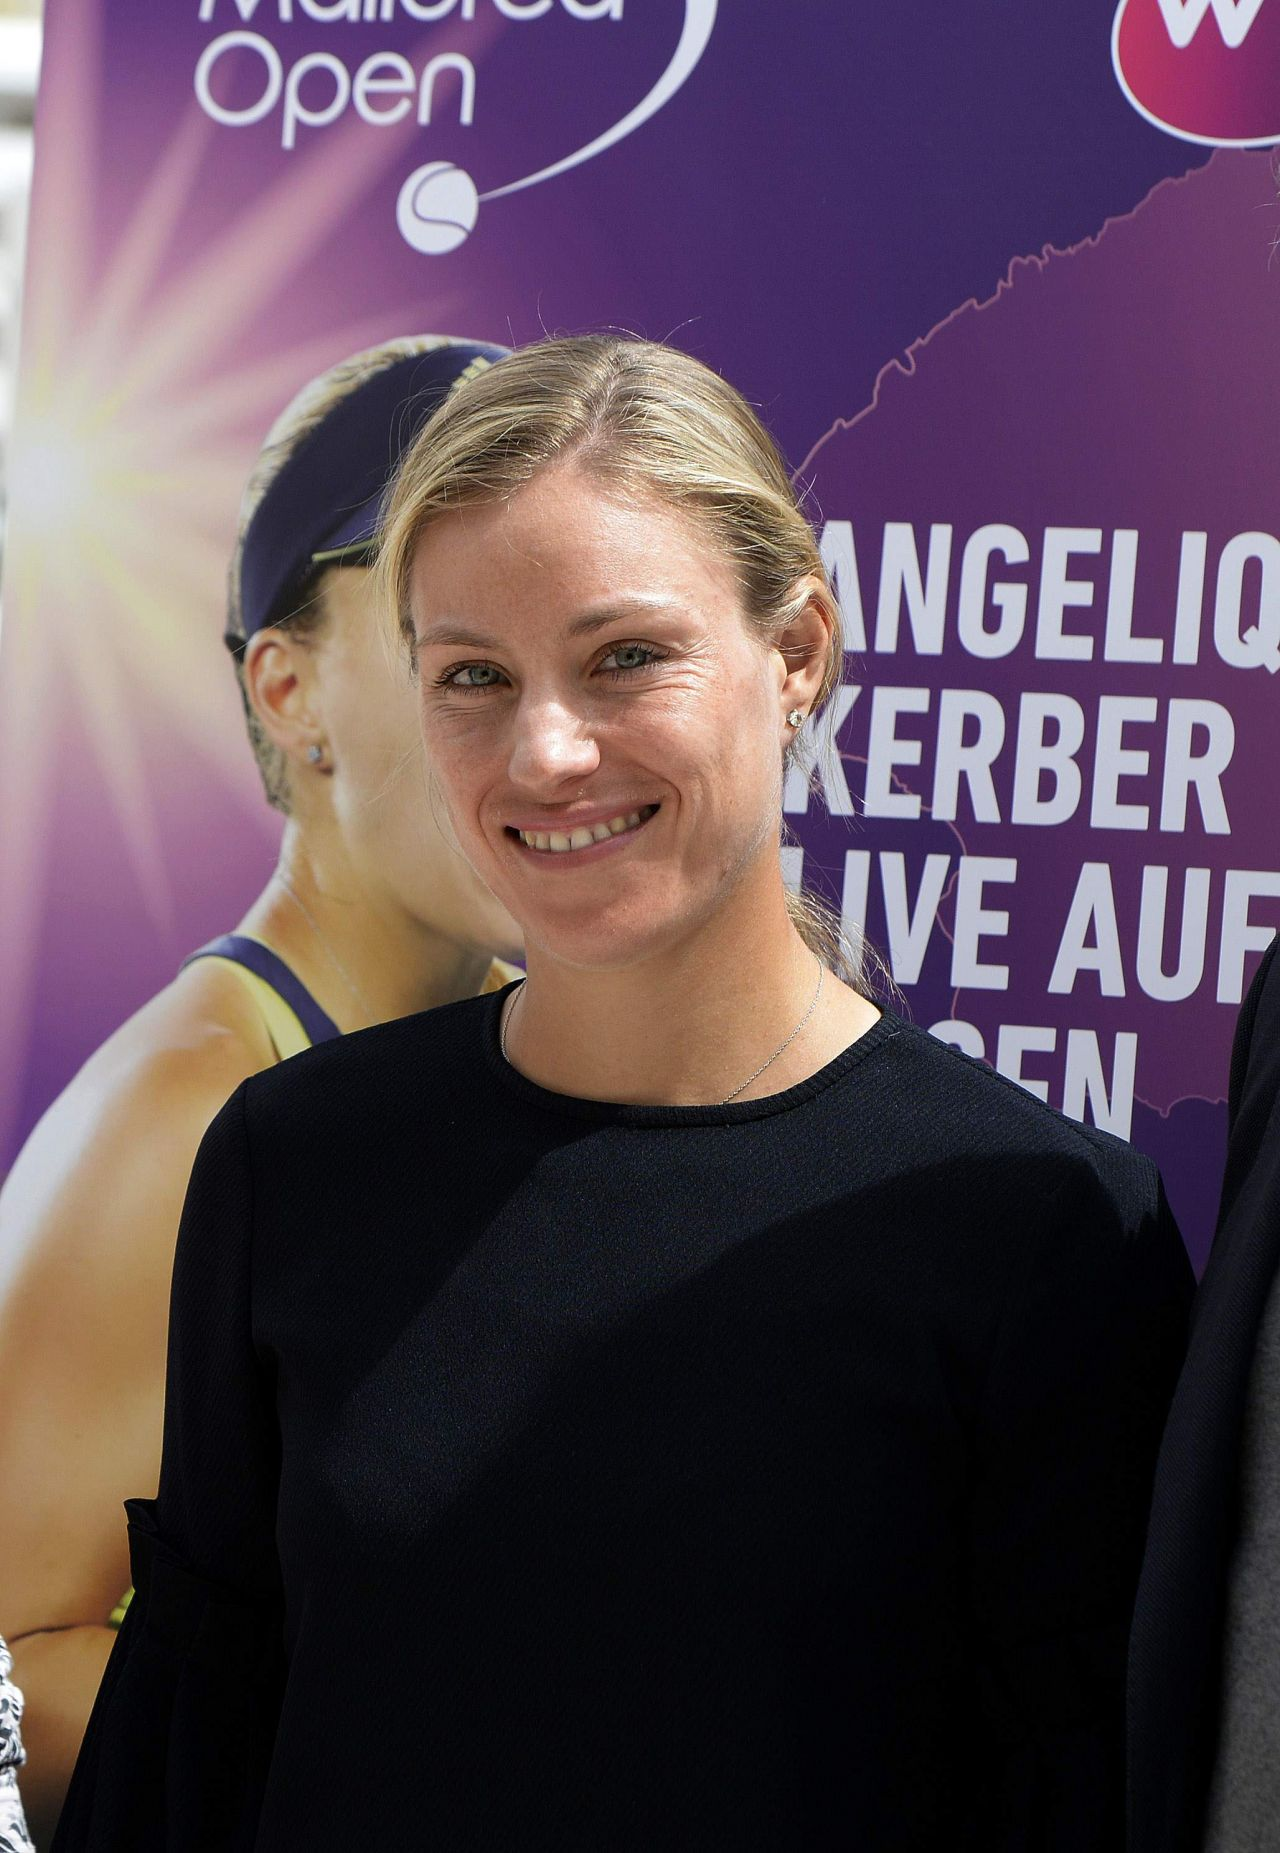 Angelique Kerber Mallorca Open Tennis Press Conference